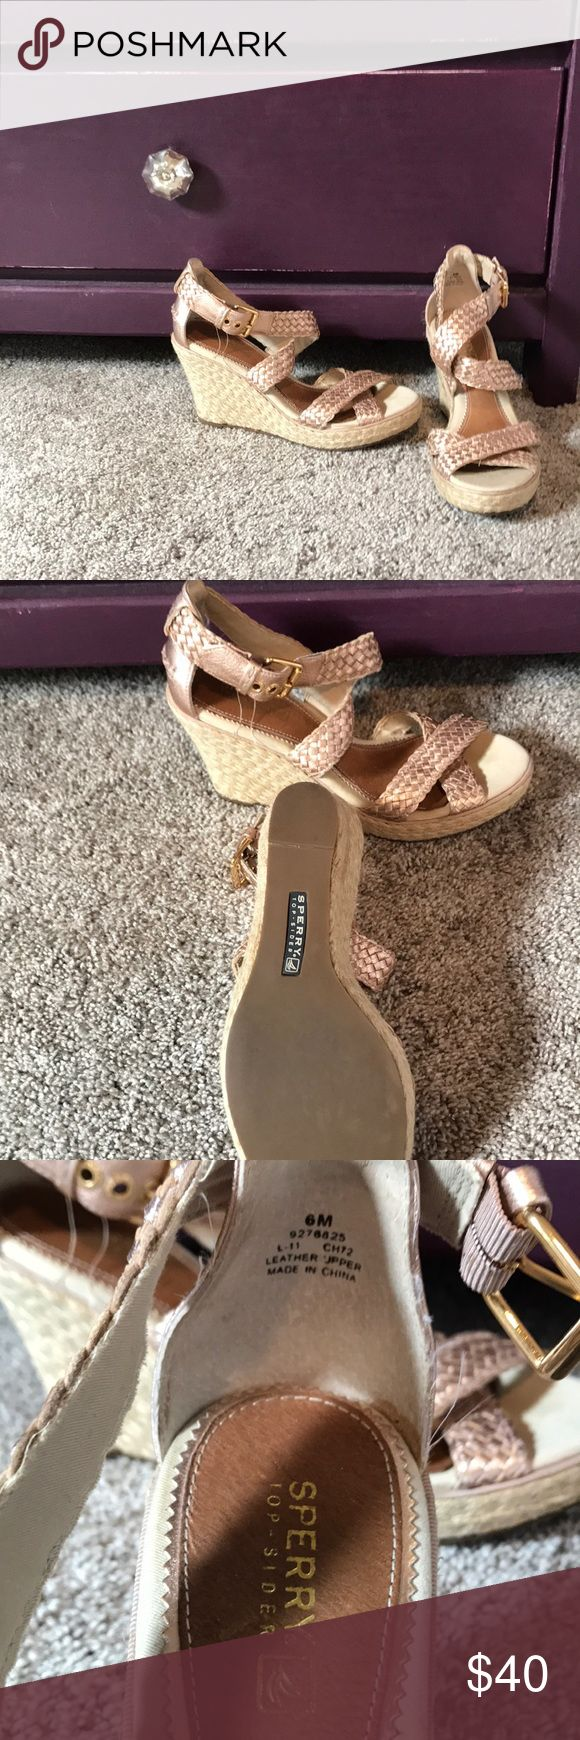 Sperry rose gold wedges size 6 Sperry Top-Sider wedges in size 6. Barely worn. Left shoe has a line of decoloration, but otherwise in great condition. Willing to accept offers. Bundle 2 or more items for 25% off! 💕 Sperry Top-Sider Shoes Wedges